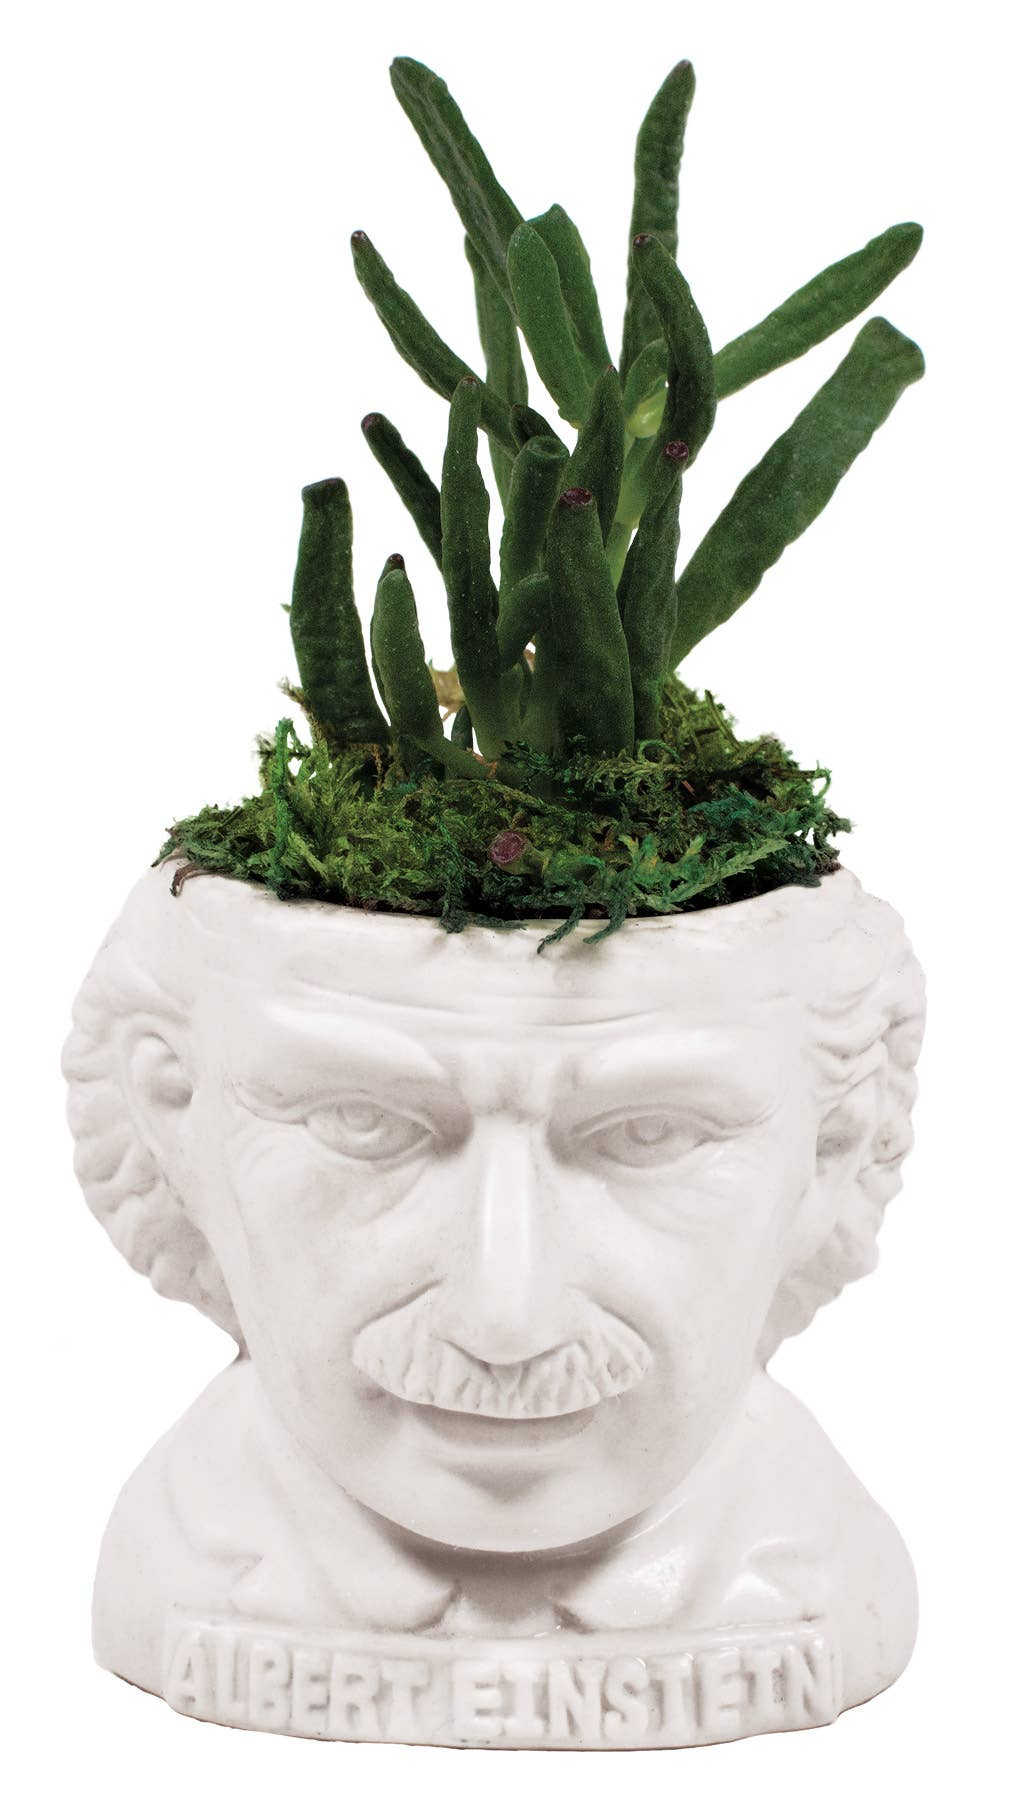 Unemployed Philosophers Guild - Albert Einstein Planter